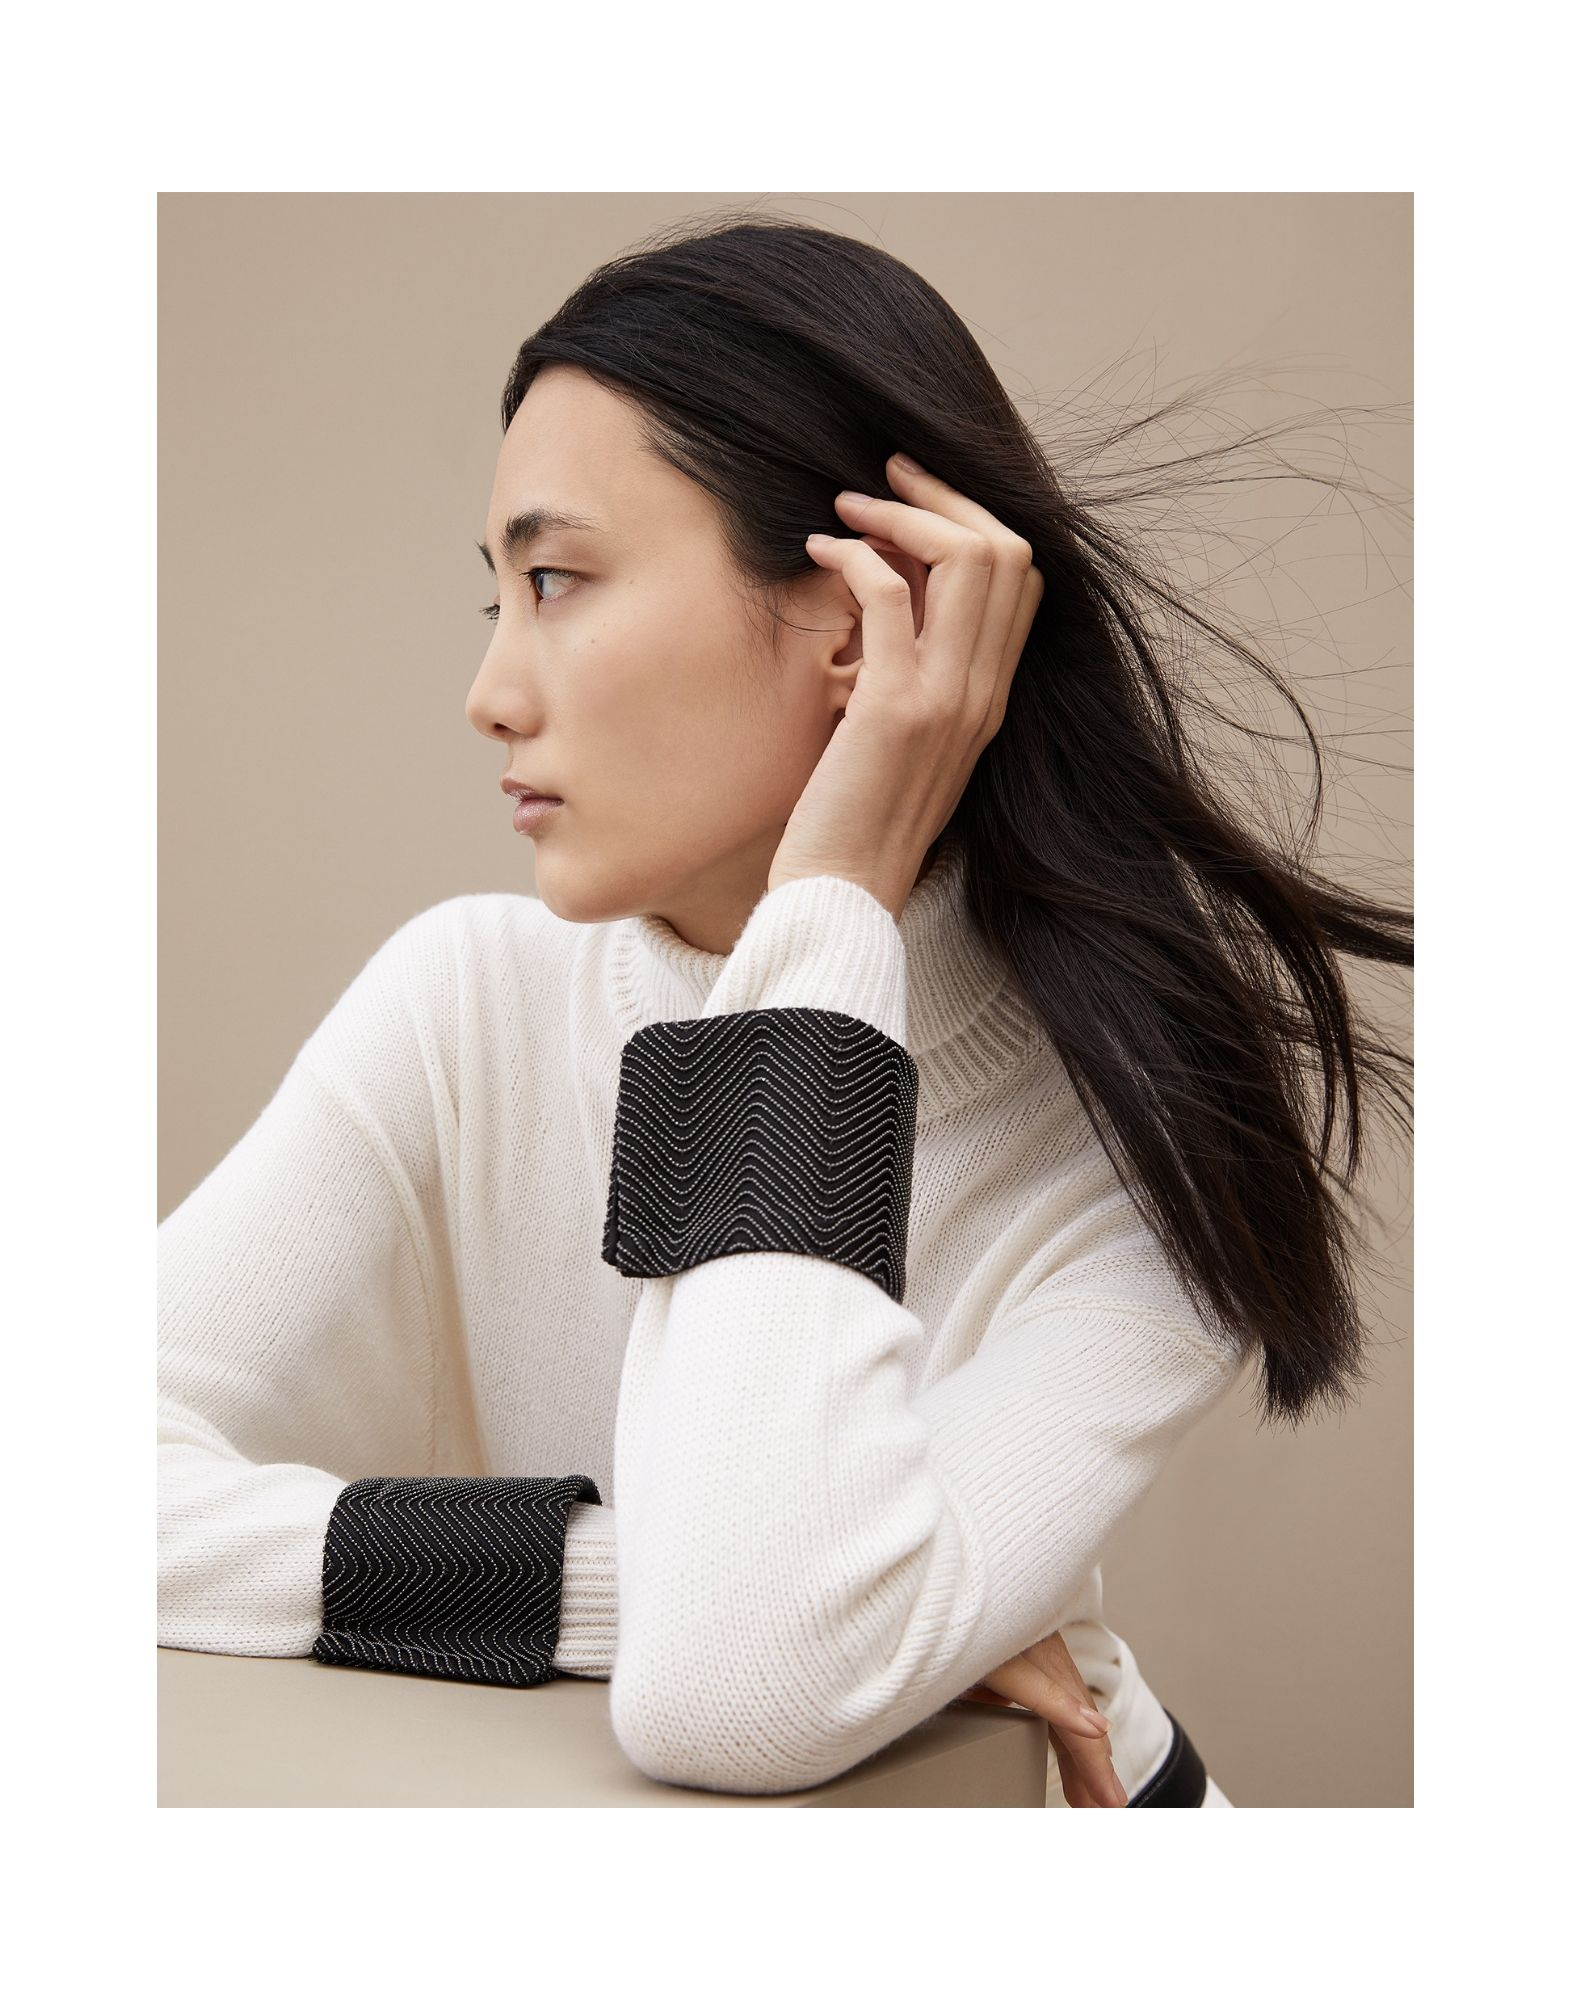 Women's Autumn-Winter 2019 Collection - Accessories